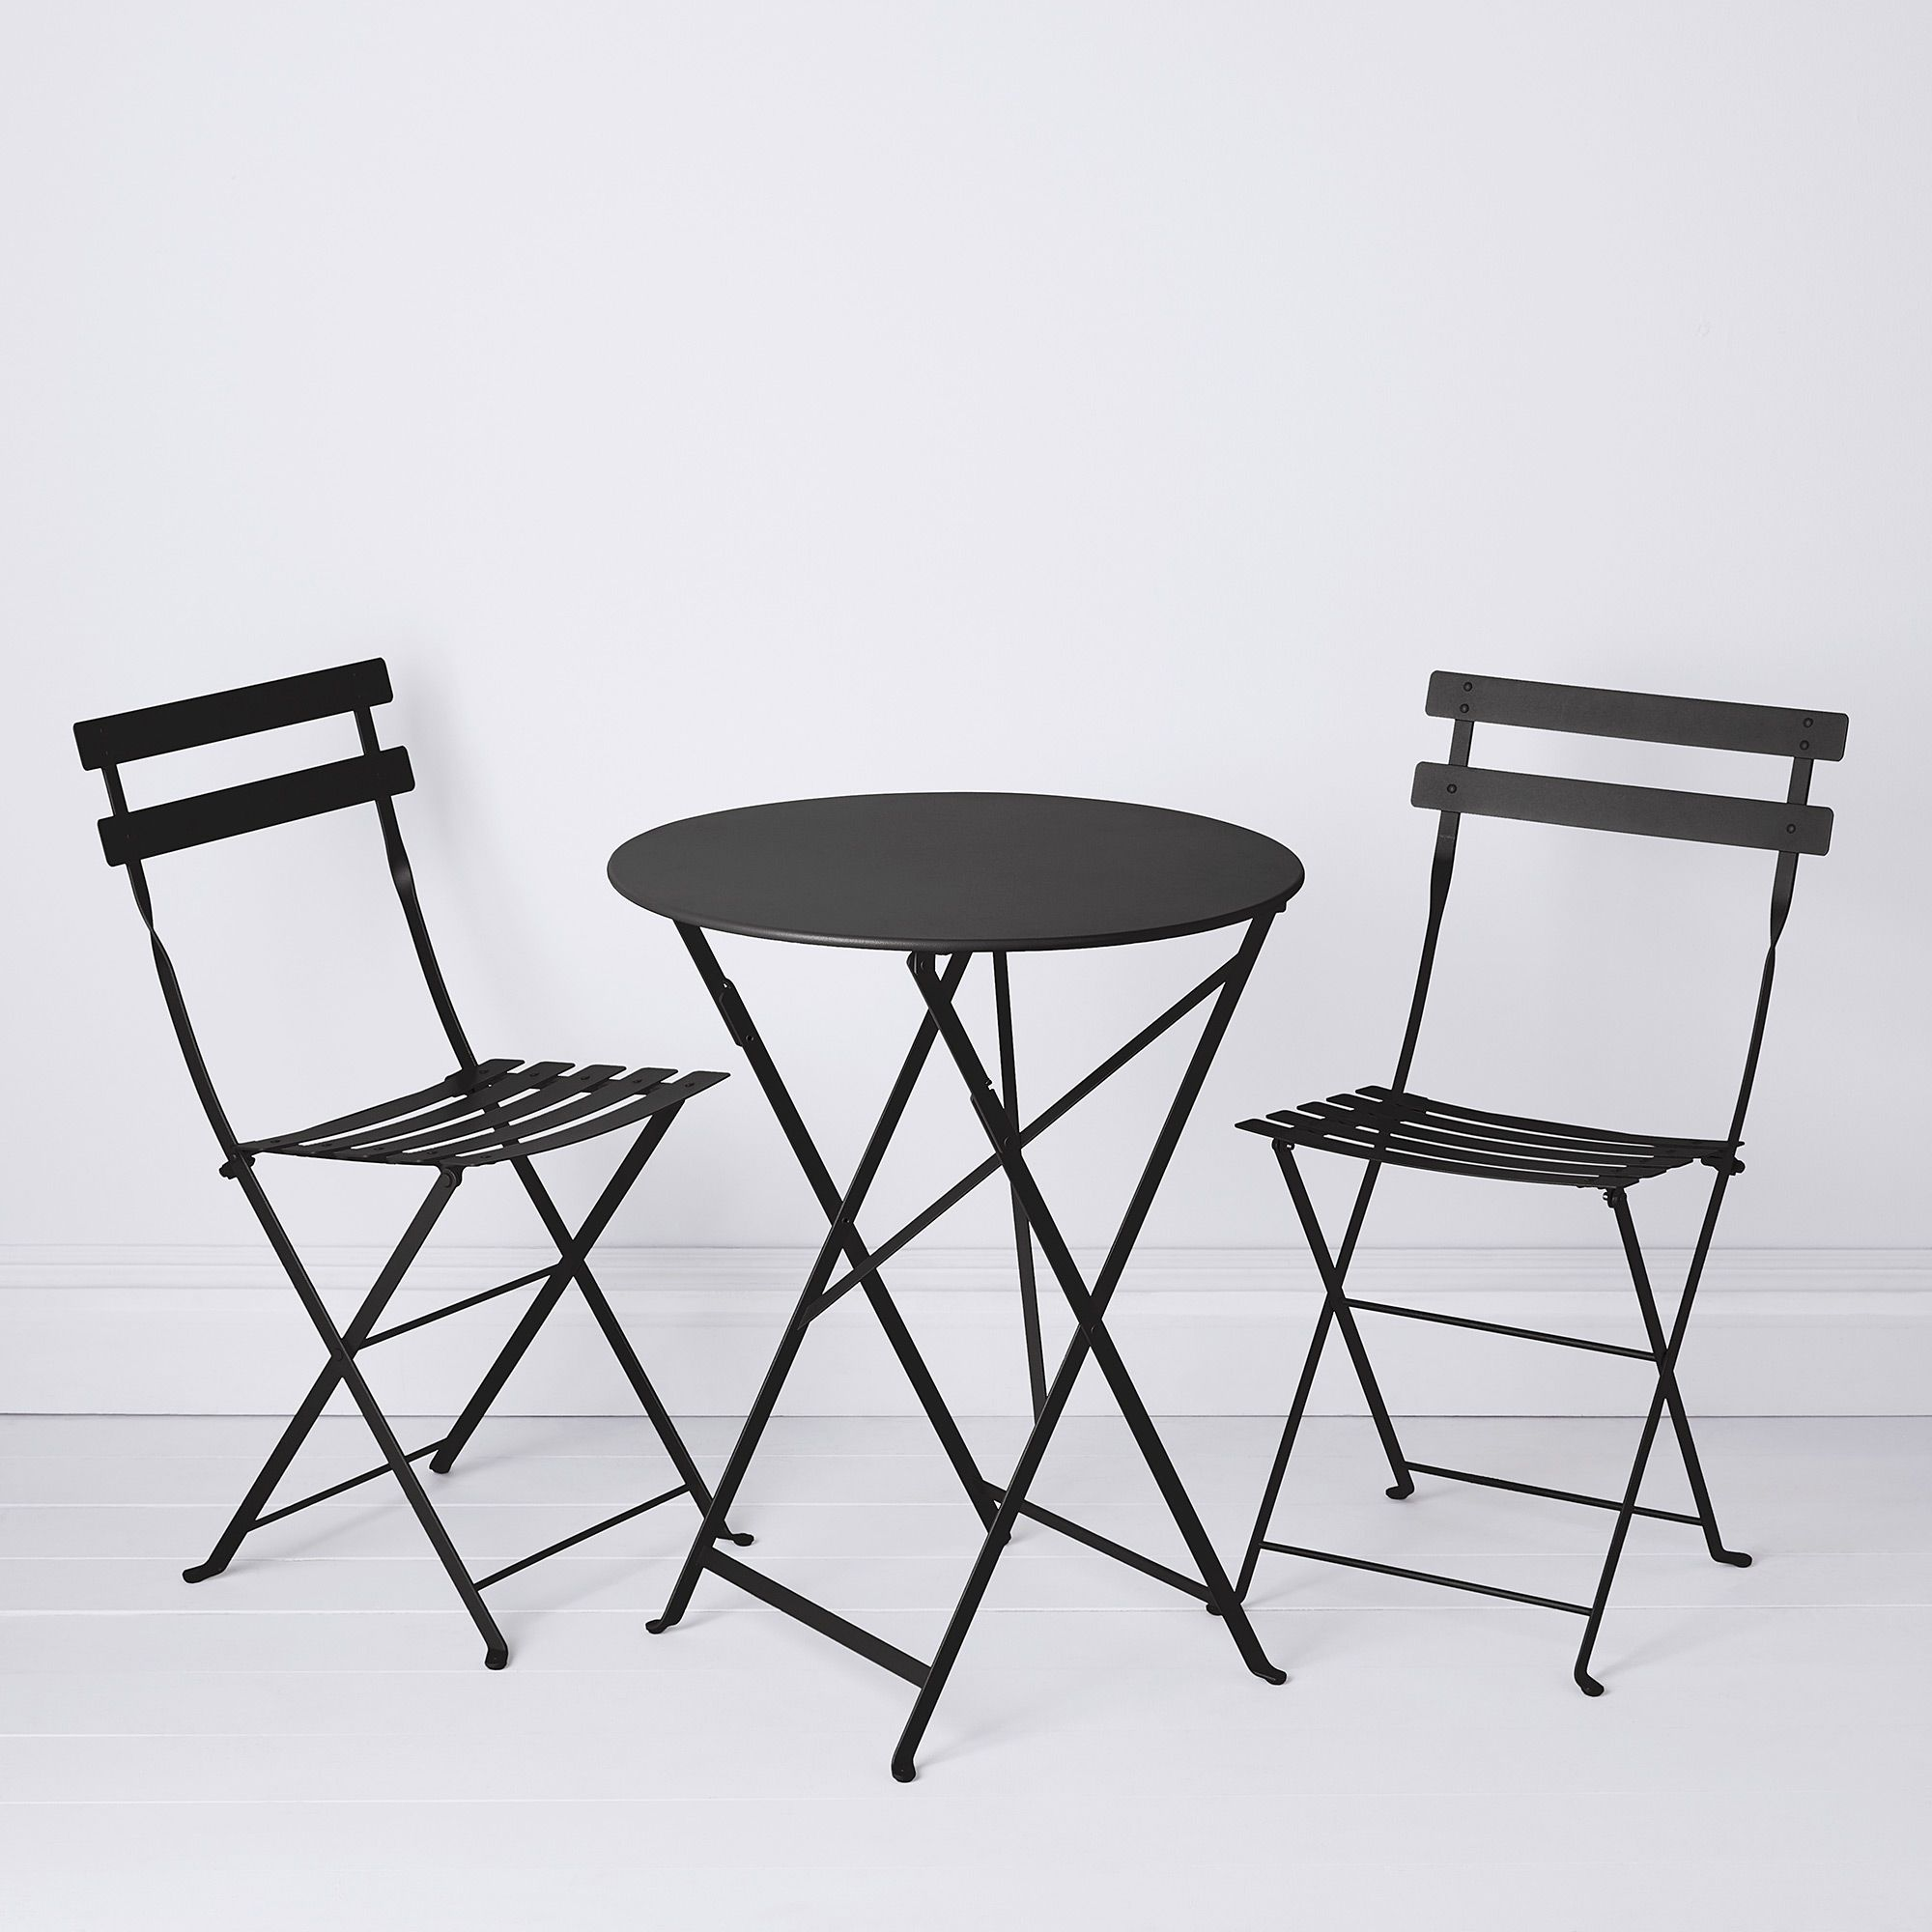 Fermob Bistro Folding Table and Chairs $240